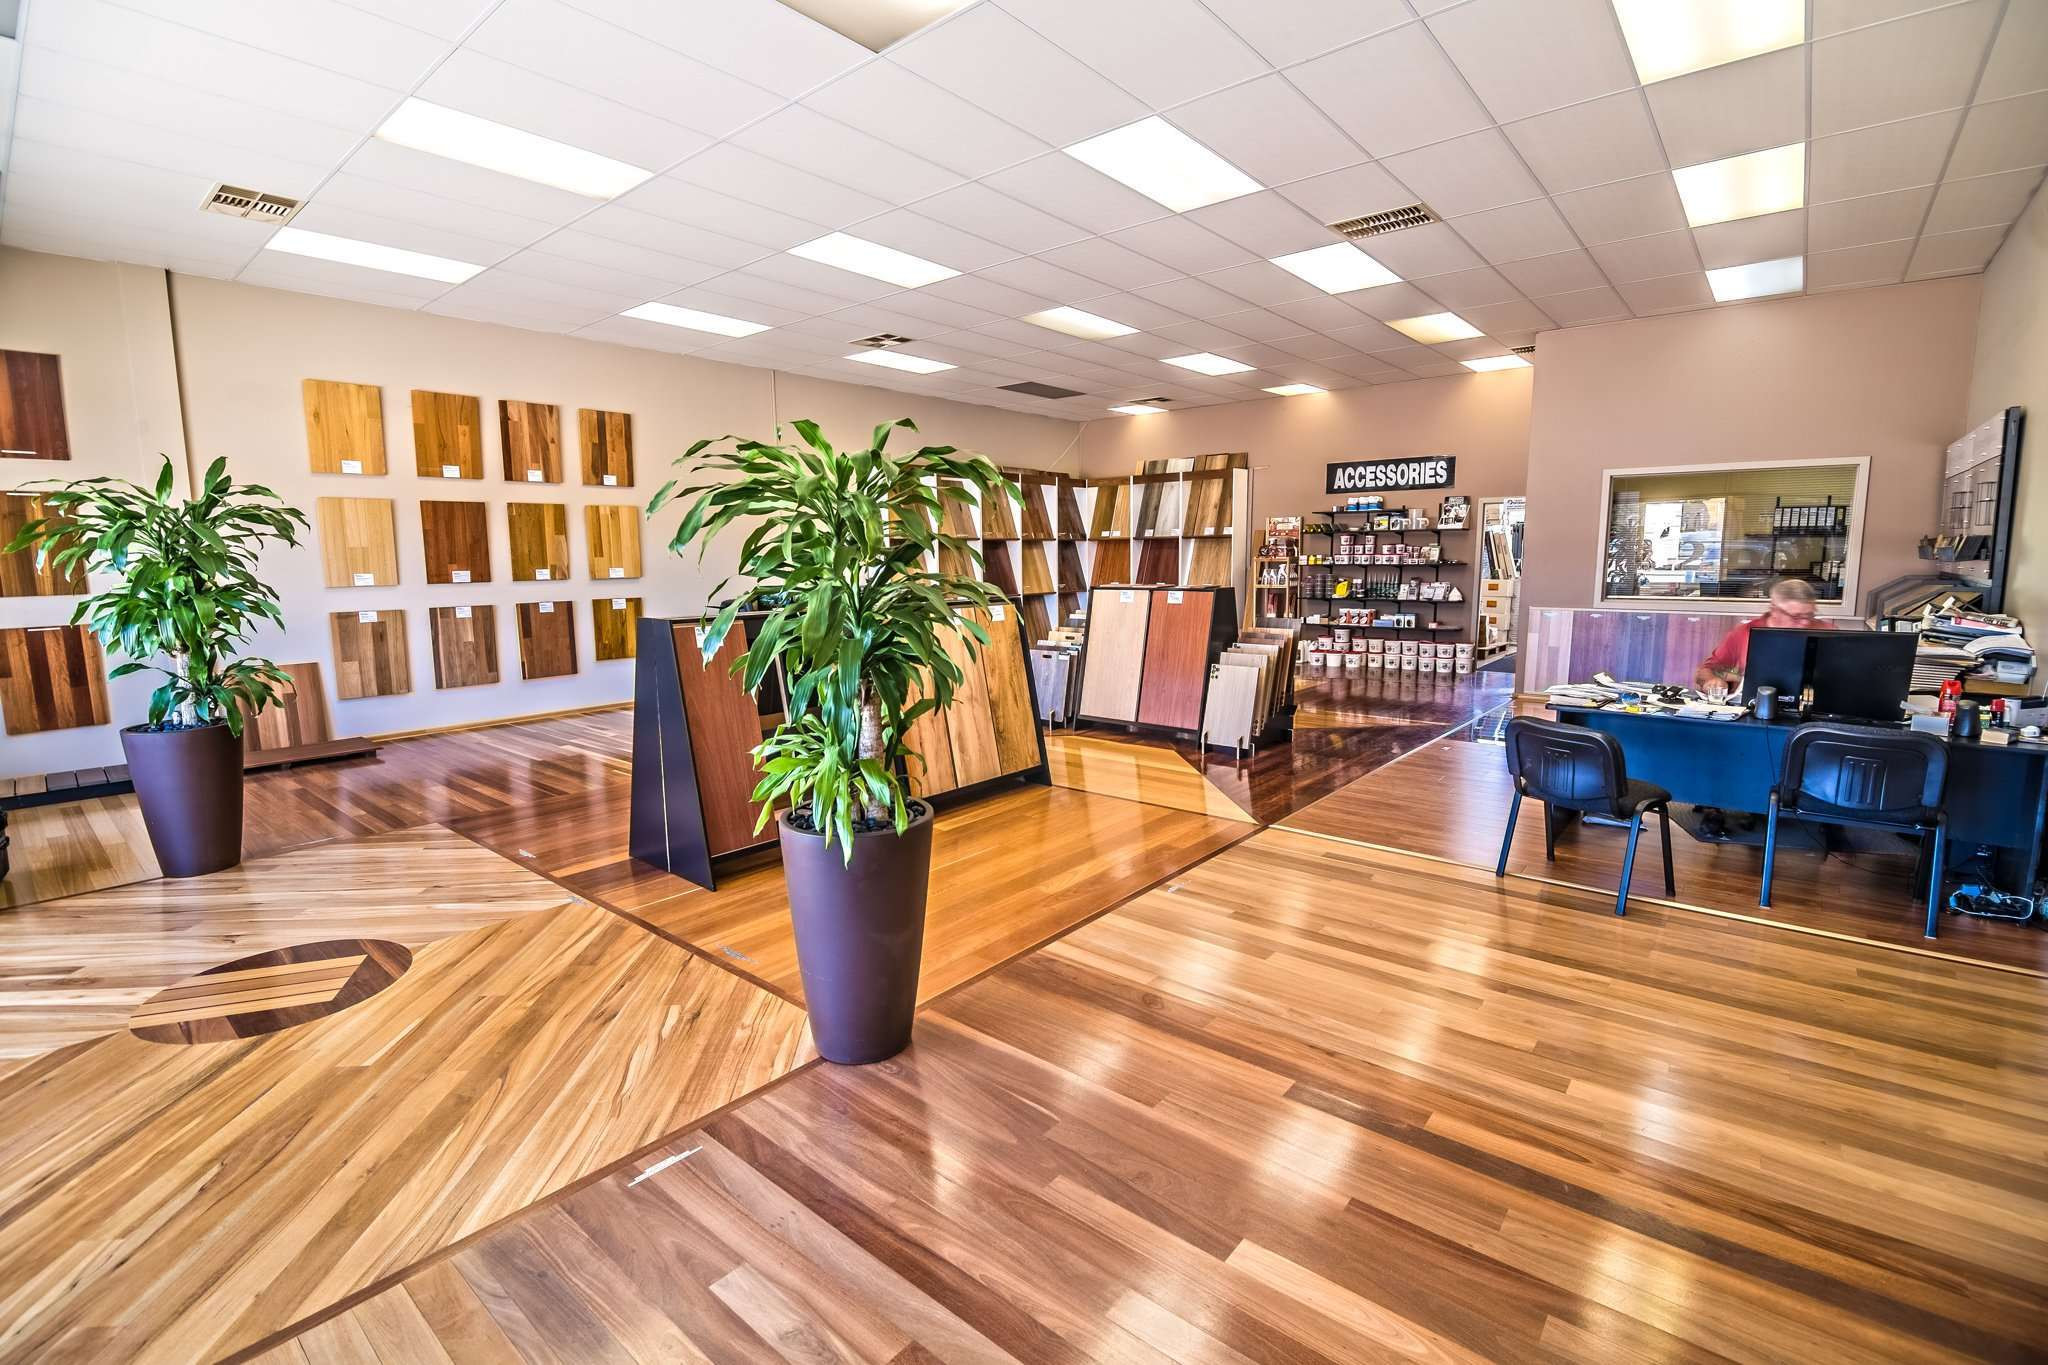 cost per sq foot to install hardwood floors of wood floor price lists a1 wood floors intended for 4 1451 albany hwy cannington